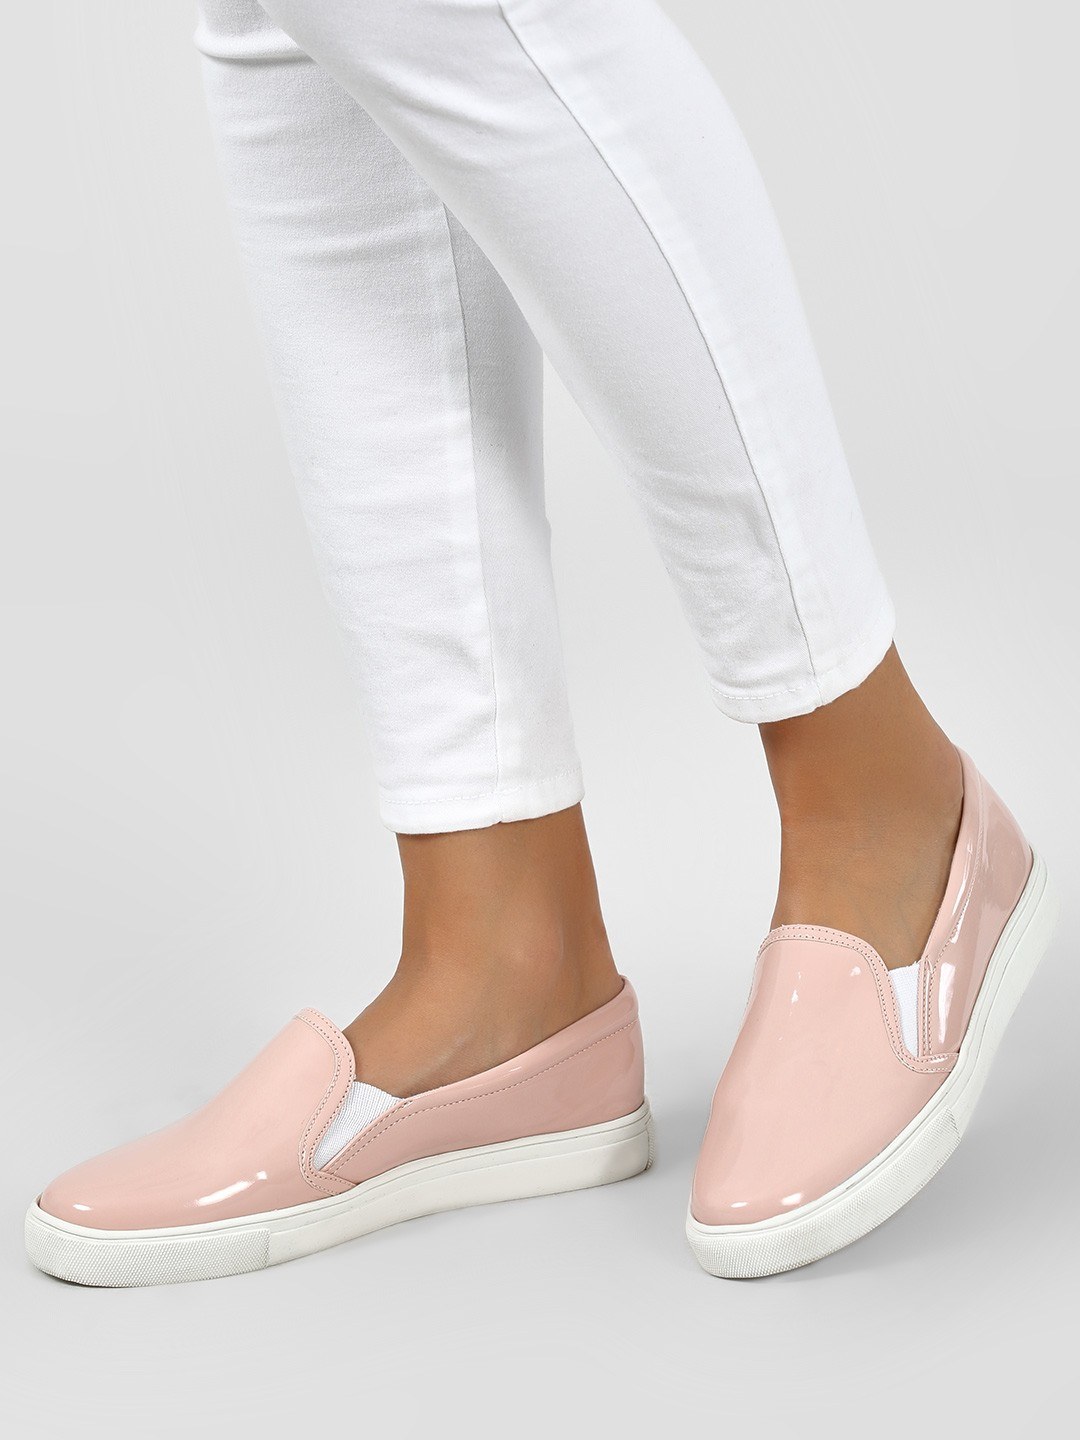 KOOVS Pink Patent Finish Slip-On Sneakers 1